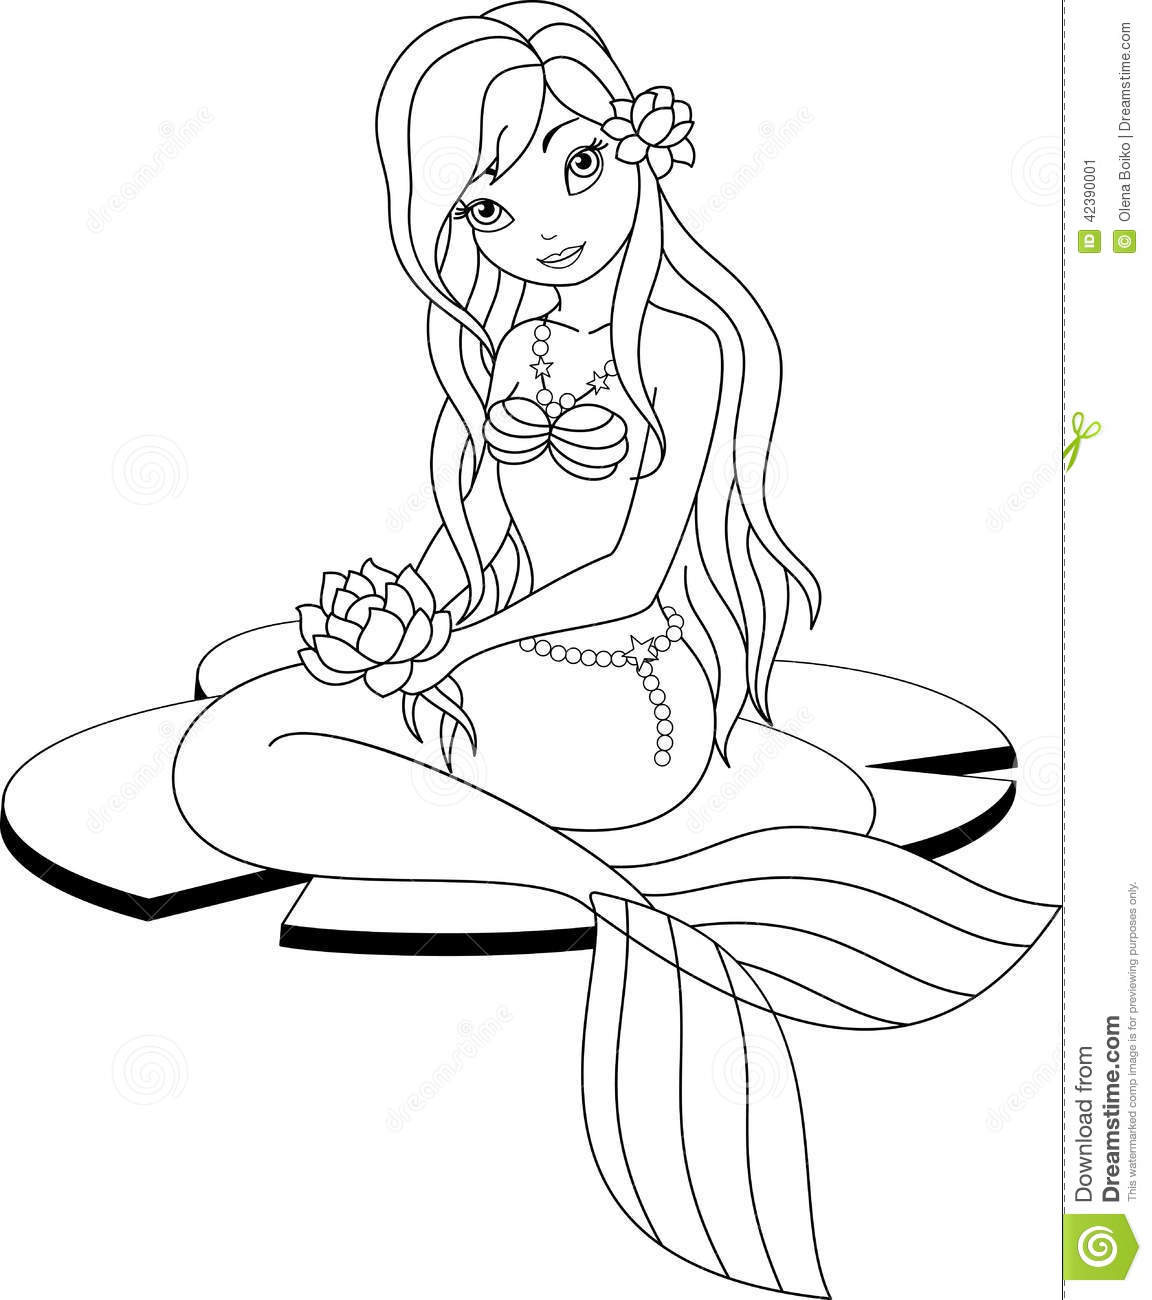 1152x1300 Printable Mermaid Coloring Pages For Kids Wth Dolphins Of Mermaids